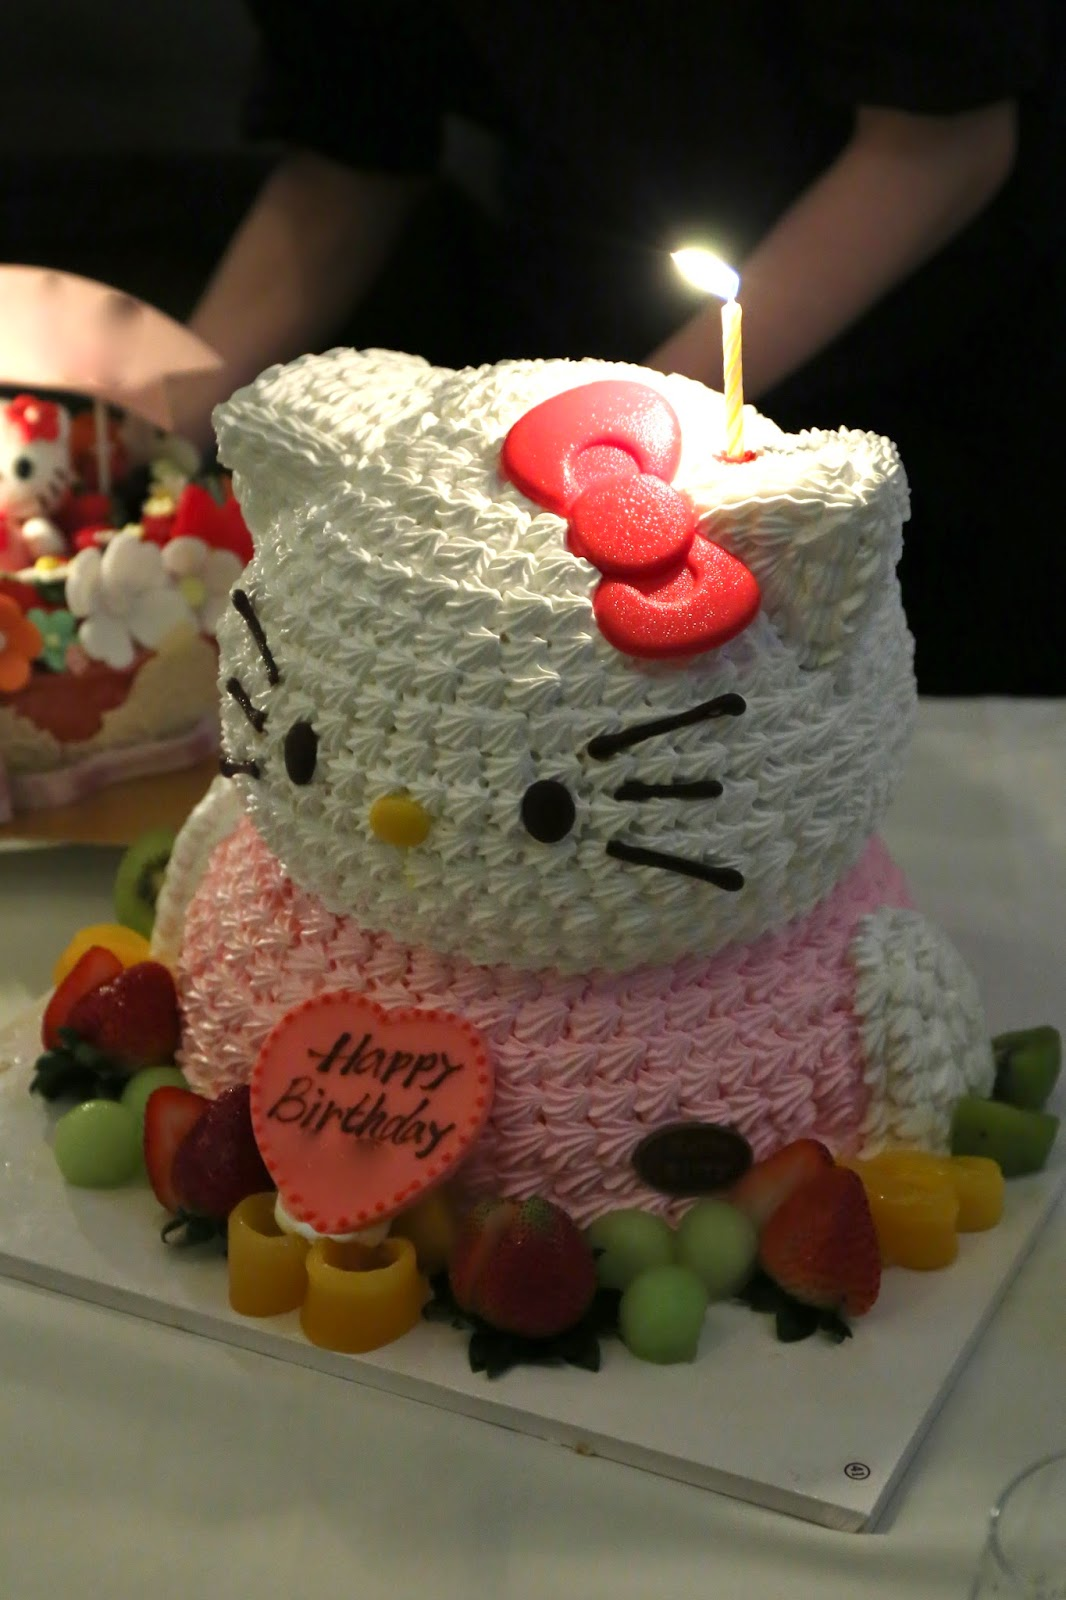 Diary of a Growing Boy Hello Kitty birthday x2